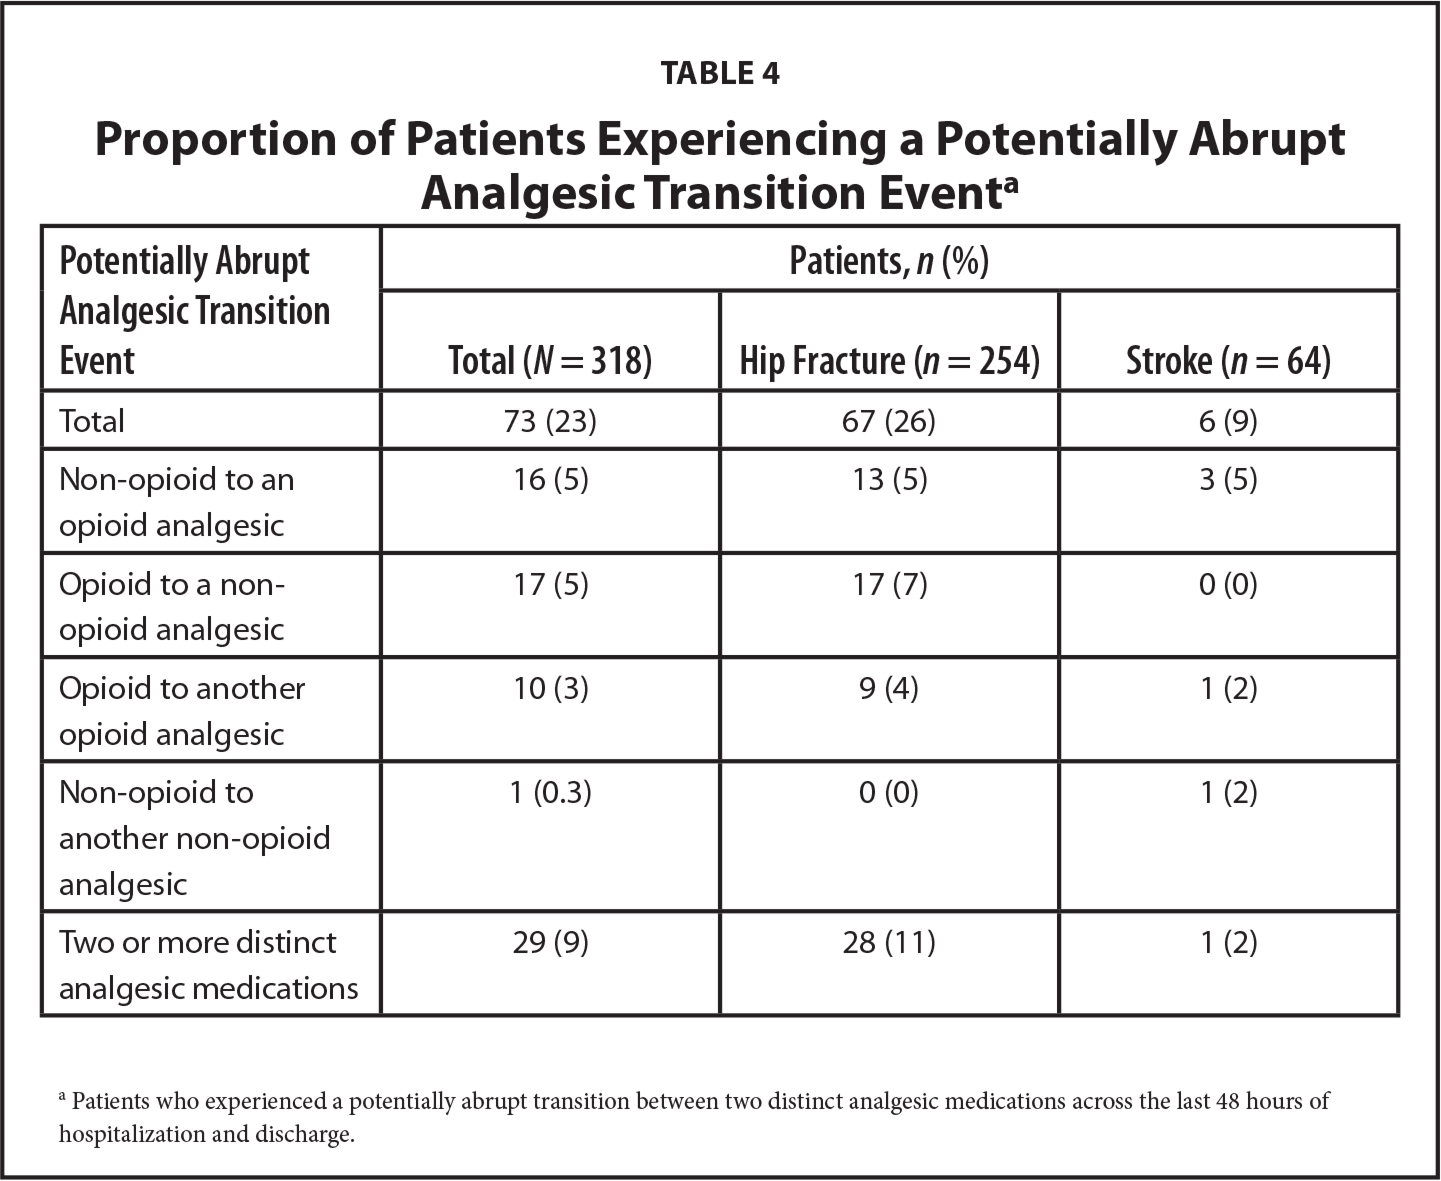 Proportion of Patients Experiencing a Potentially Abrupt Analgesic Transition Eventa